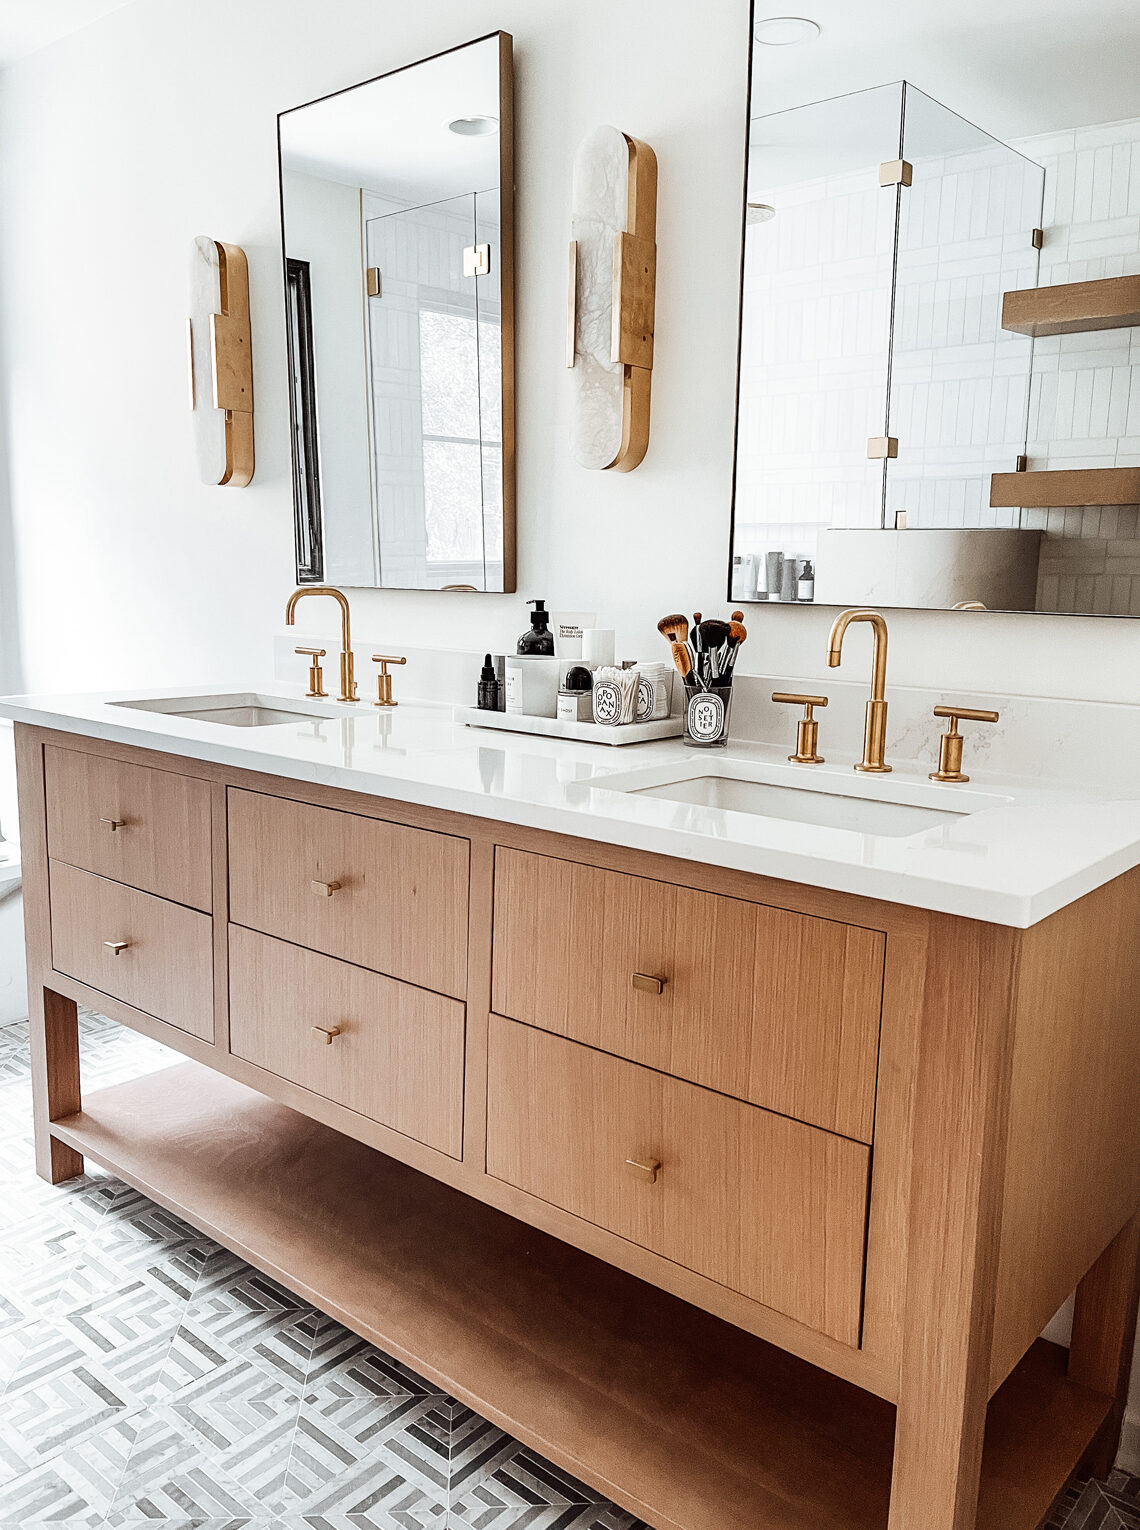 Fashion Jackson Bathroom Renovation